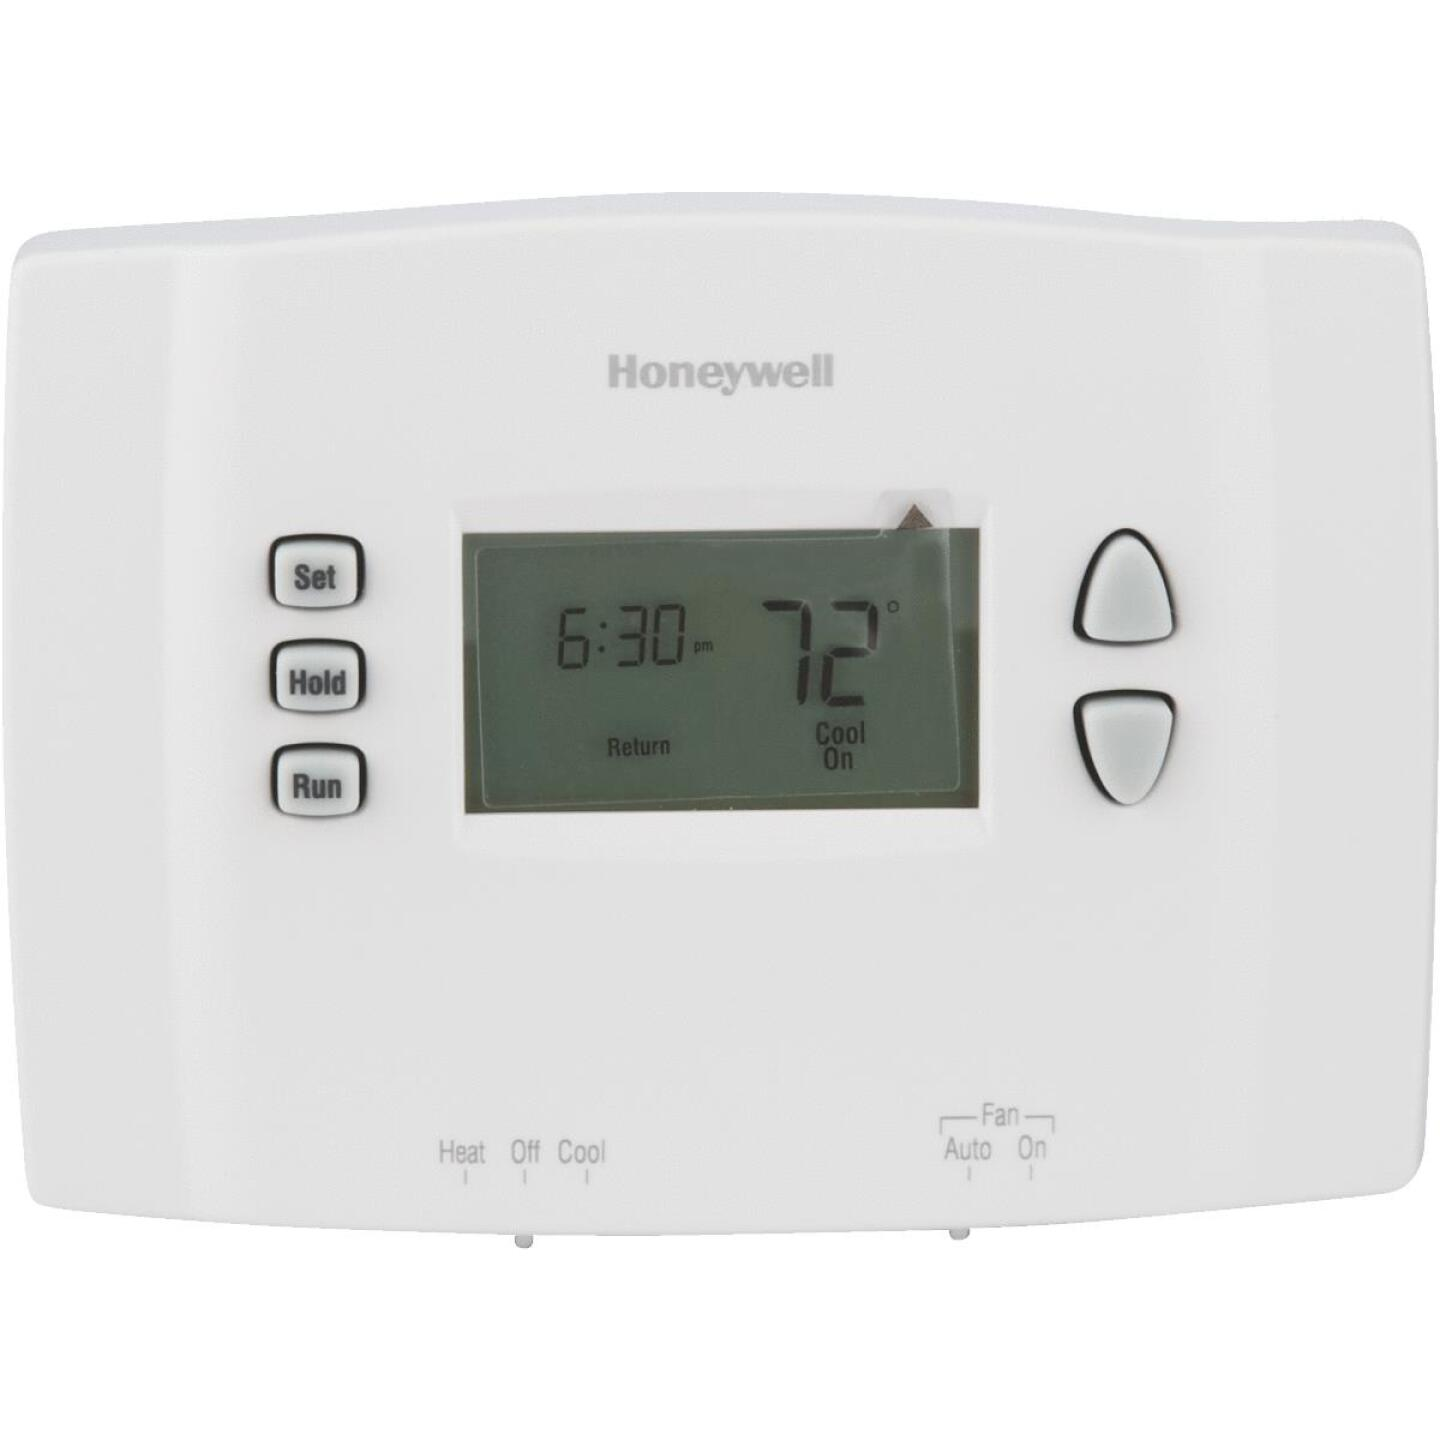 Honeywell 7-Day Programmable Off White Digital Thermostat Image 1